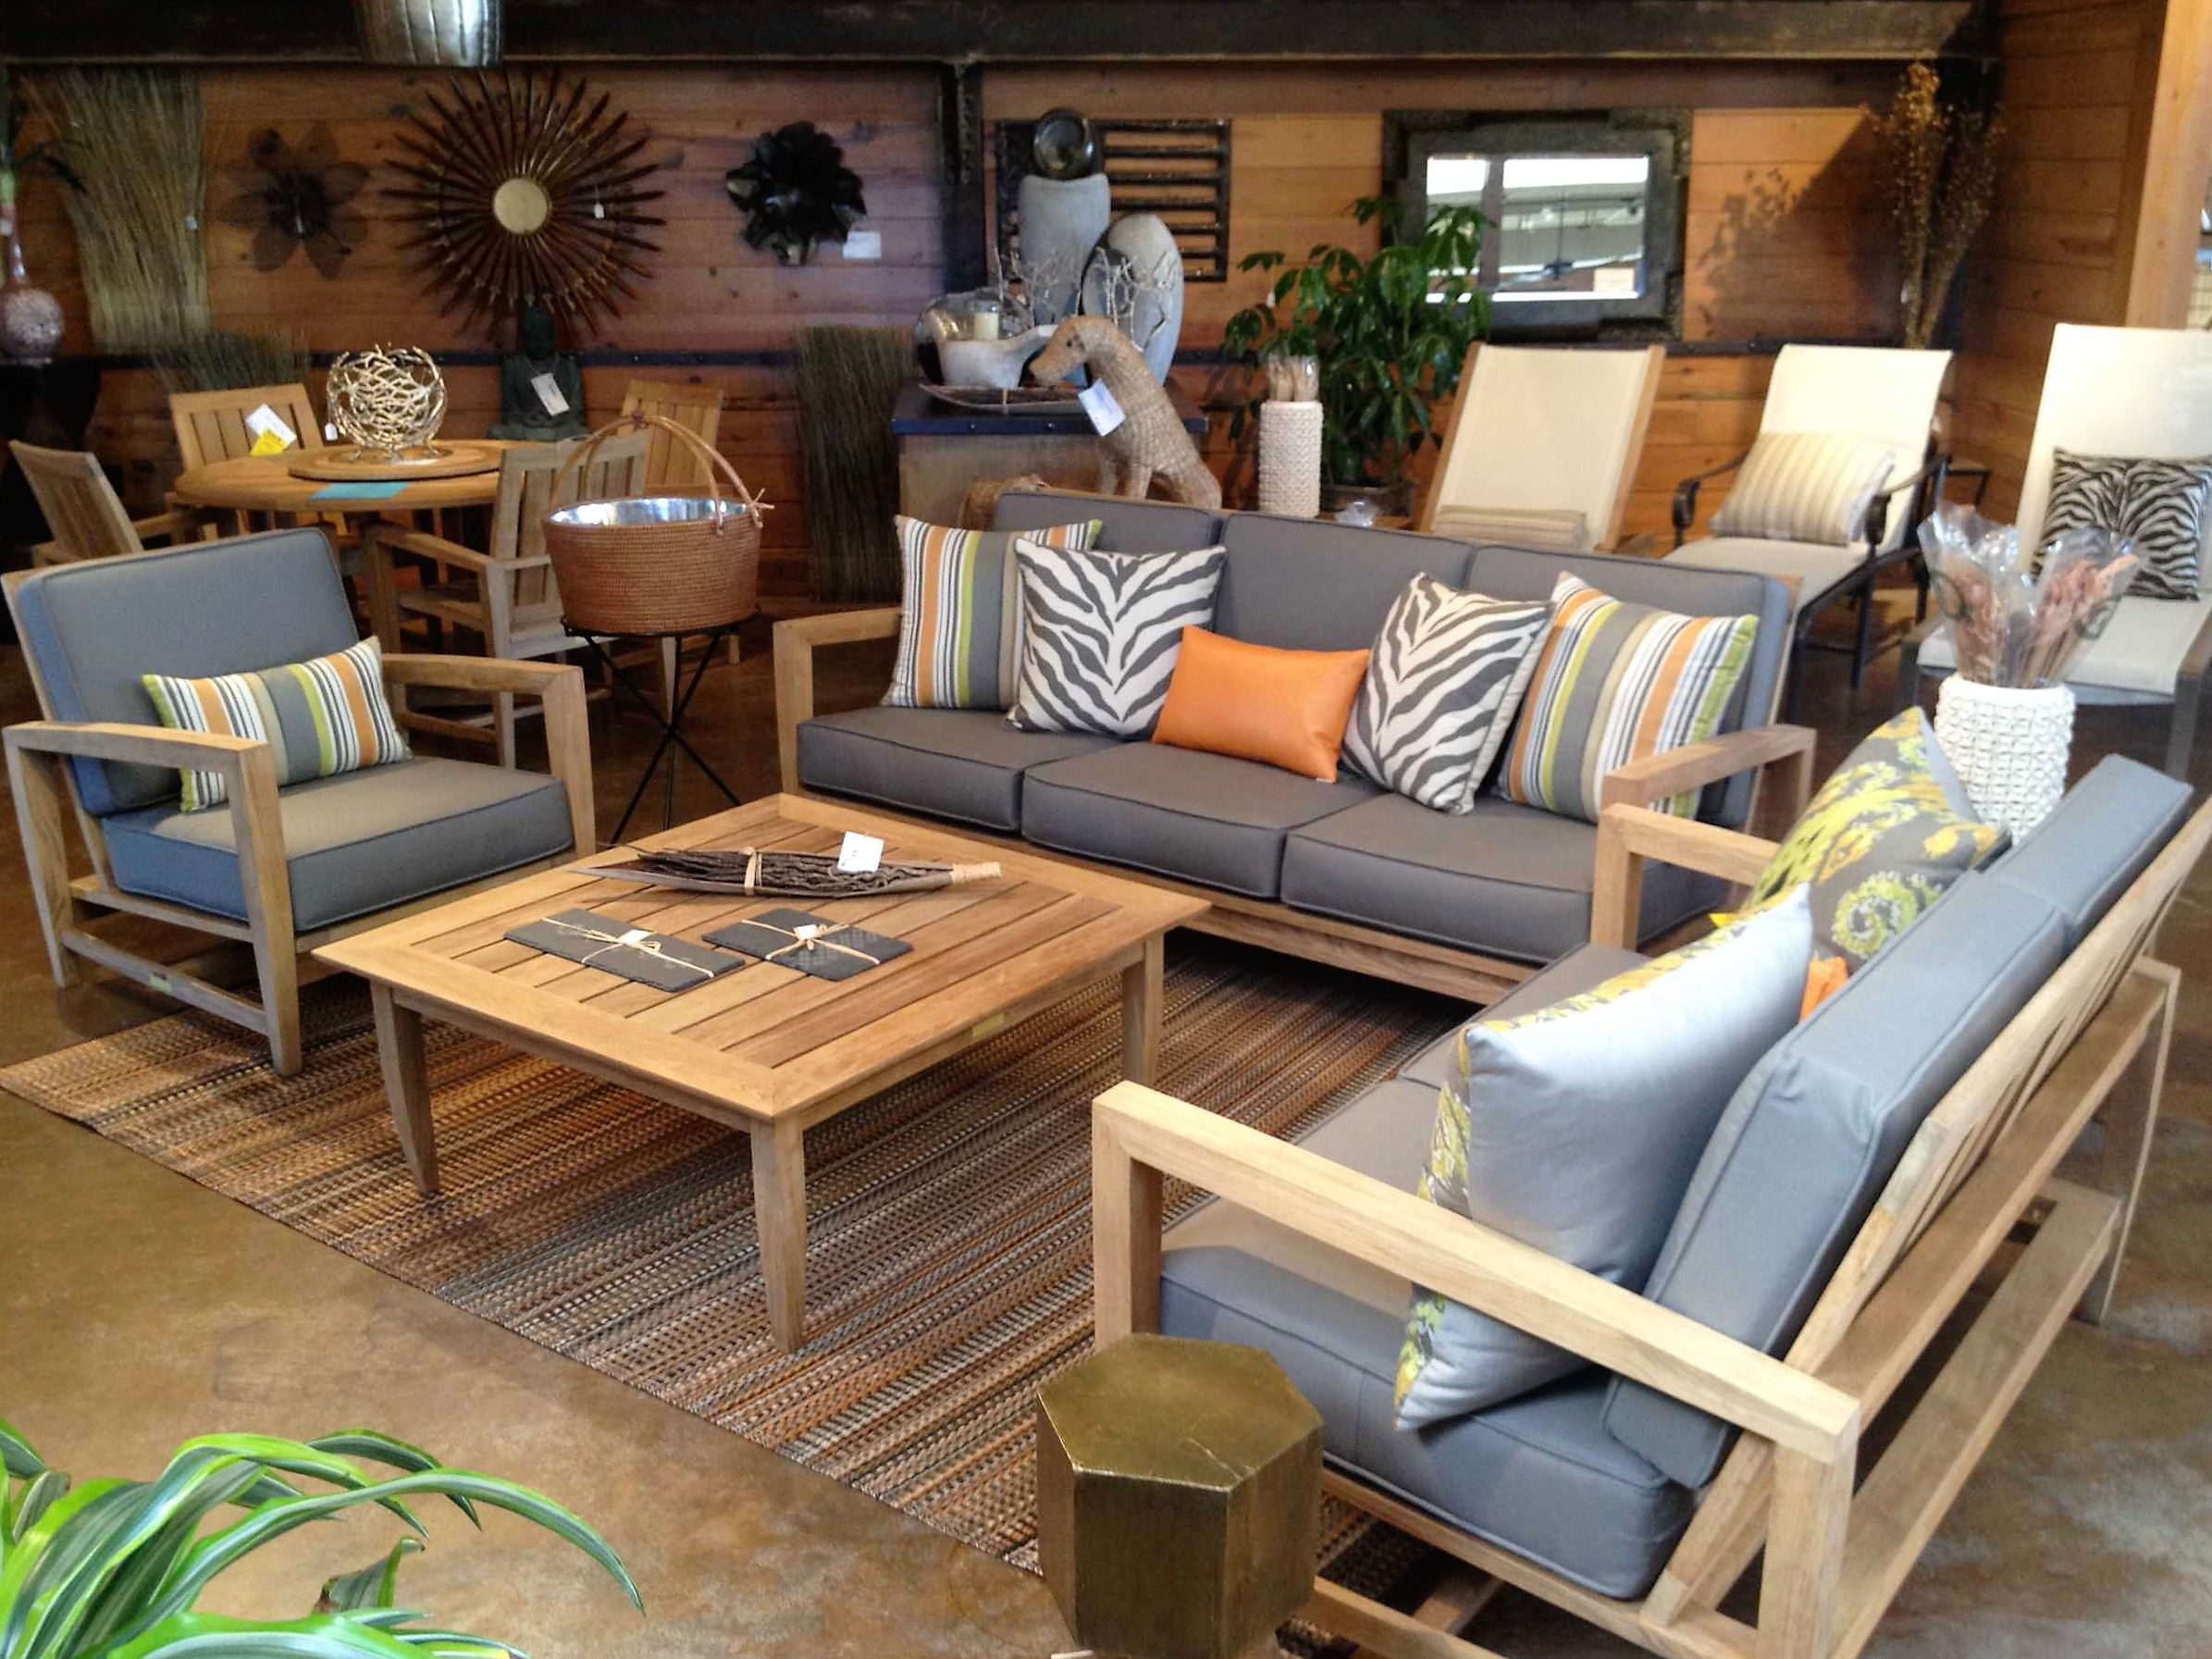 Furniture Store Dallas Free Used Furniture Stores In Hiram Ga Furniture Stores Near Dallas Ga